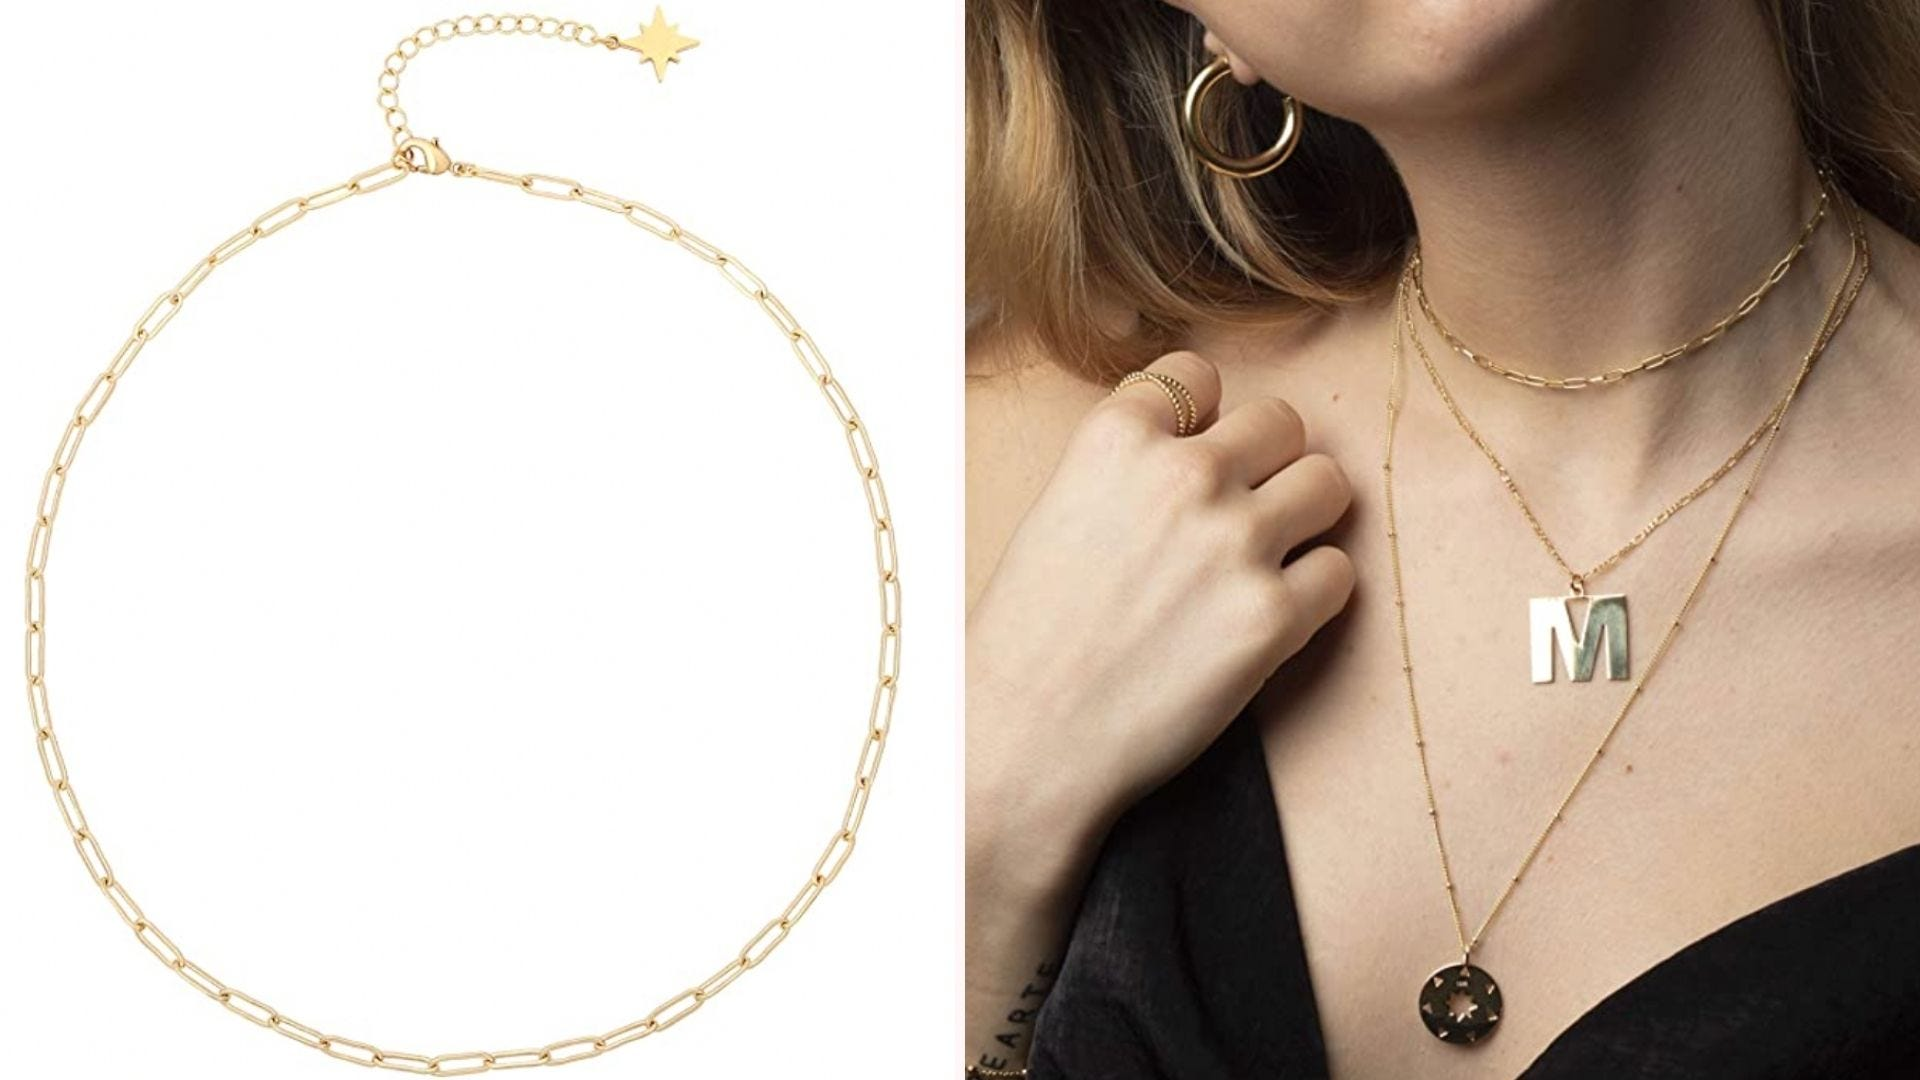 gold paperclip choker chain on white background and on a woman's neck with other gold necklaces